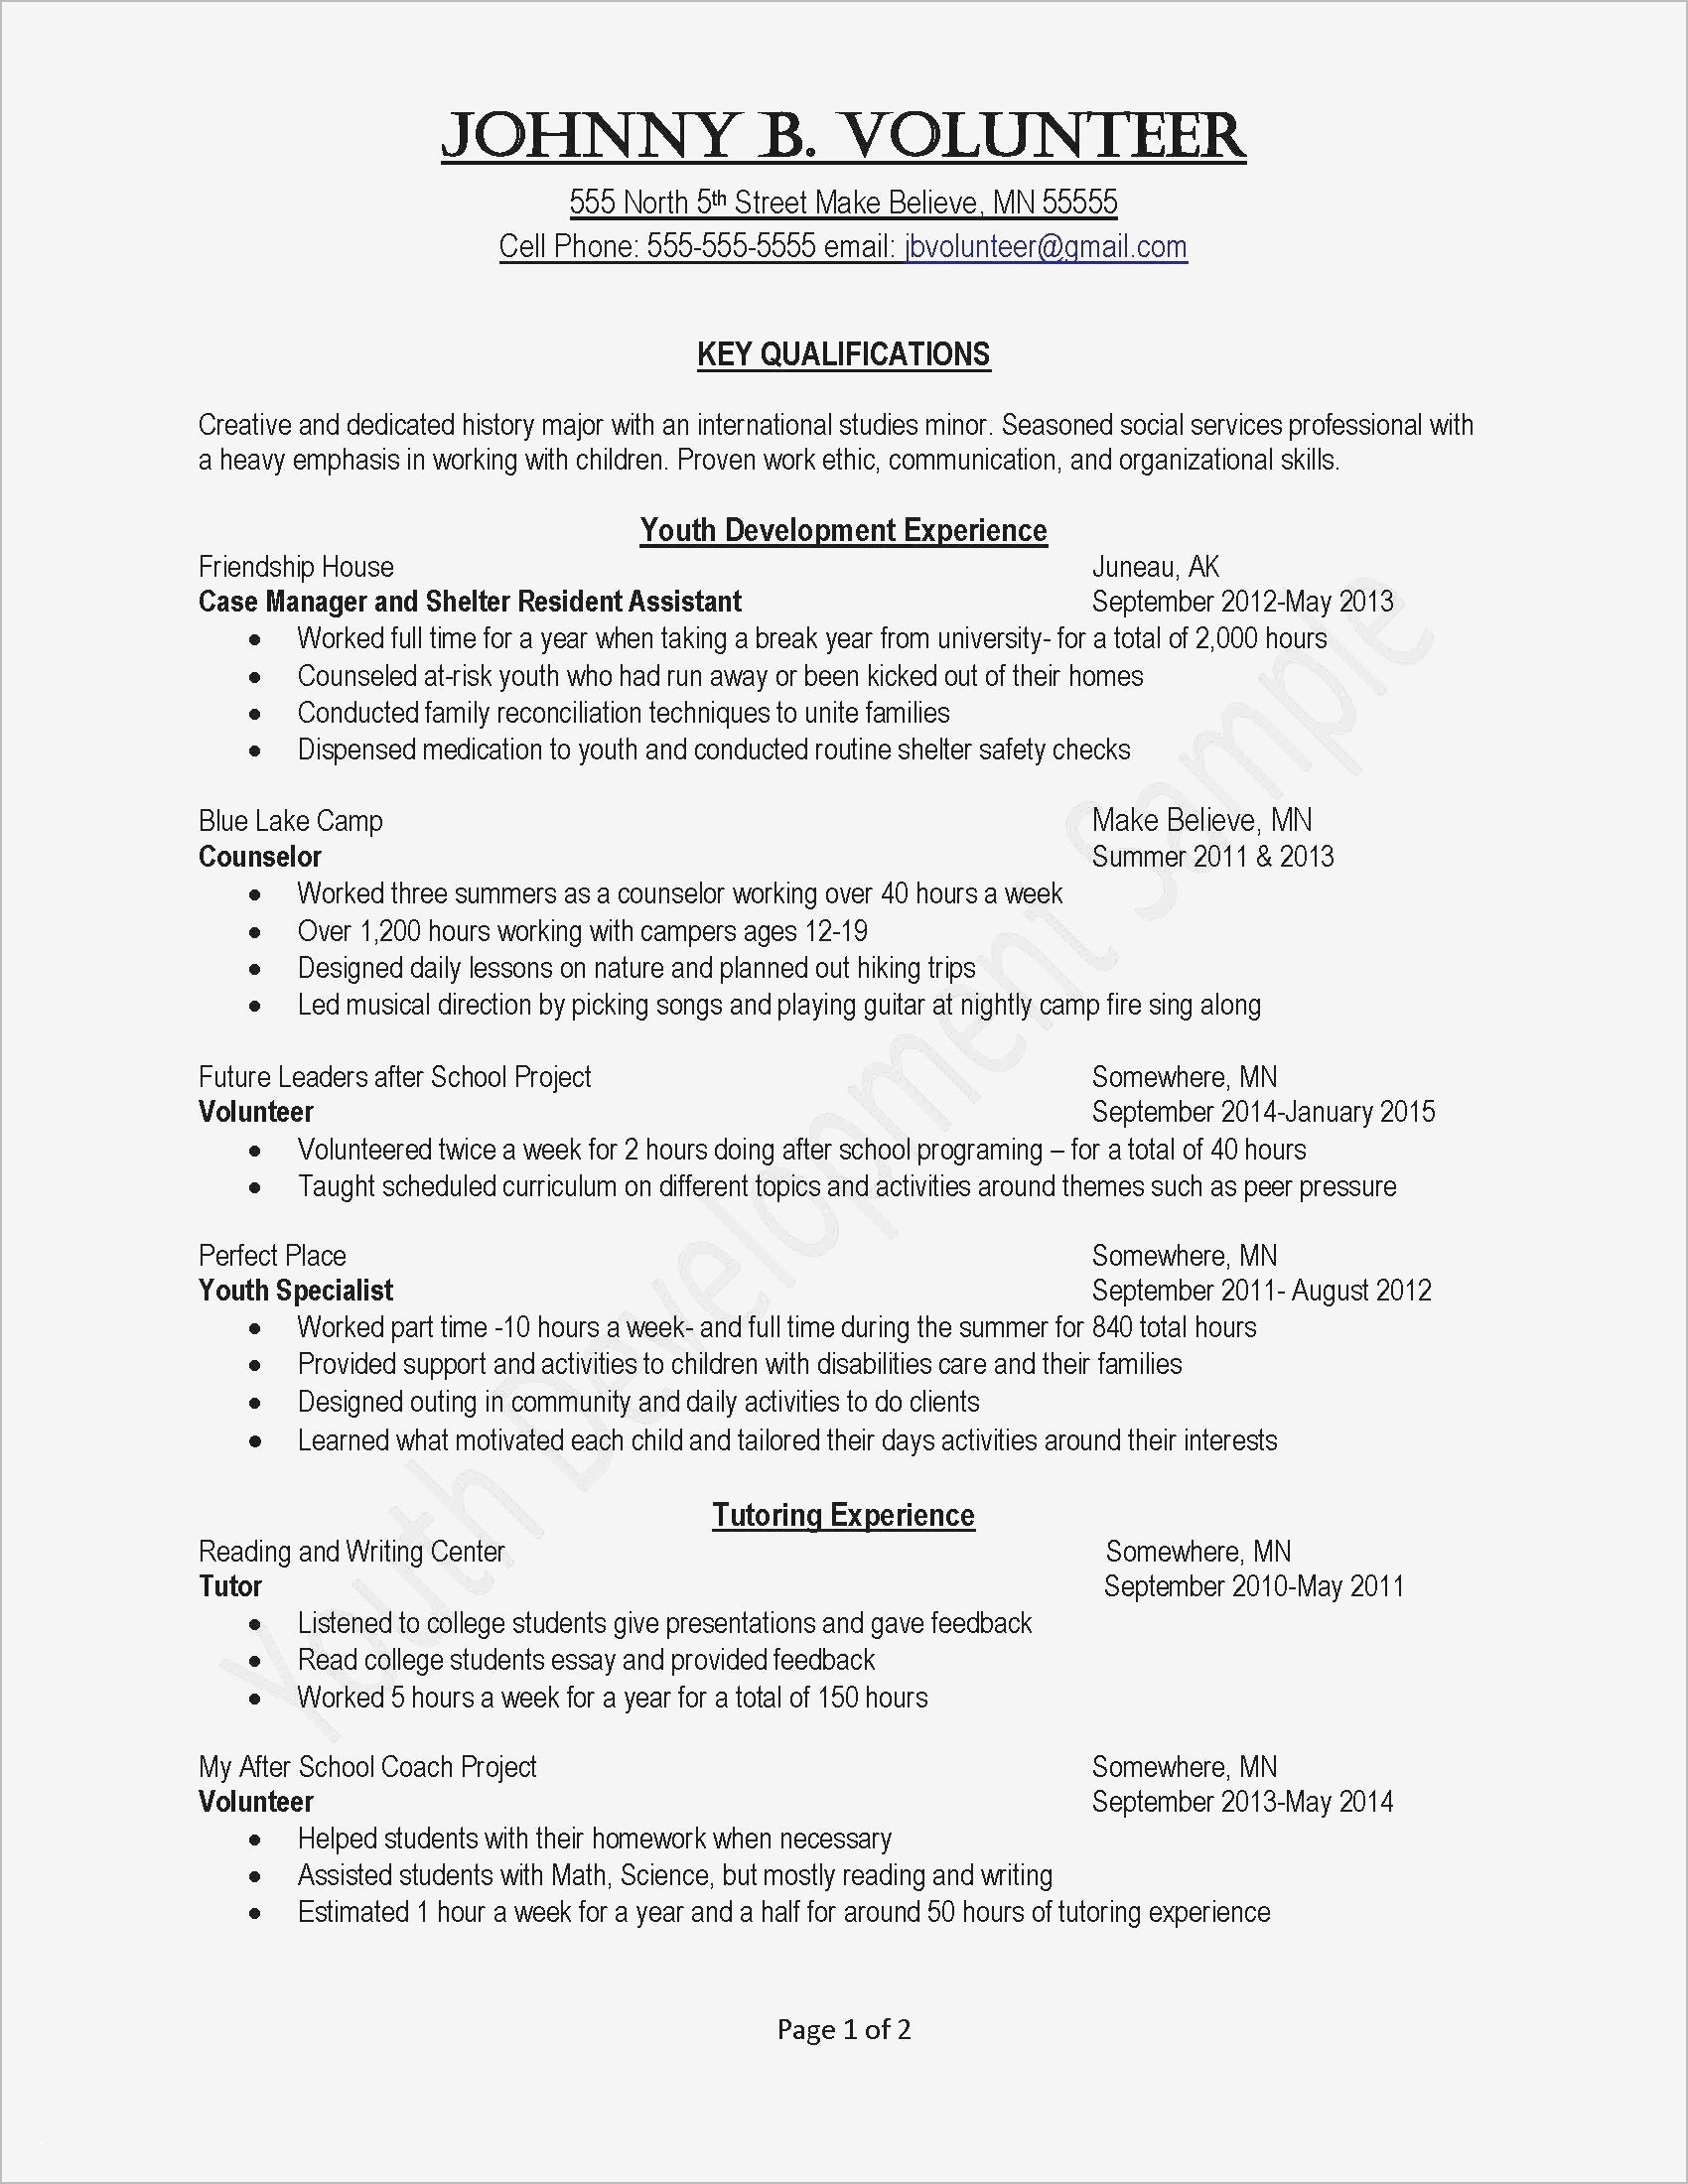 Awesome Cover Letter Template - Fun Resume Templates Free Awesome Job Fer Letter Template Us Copy Od